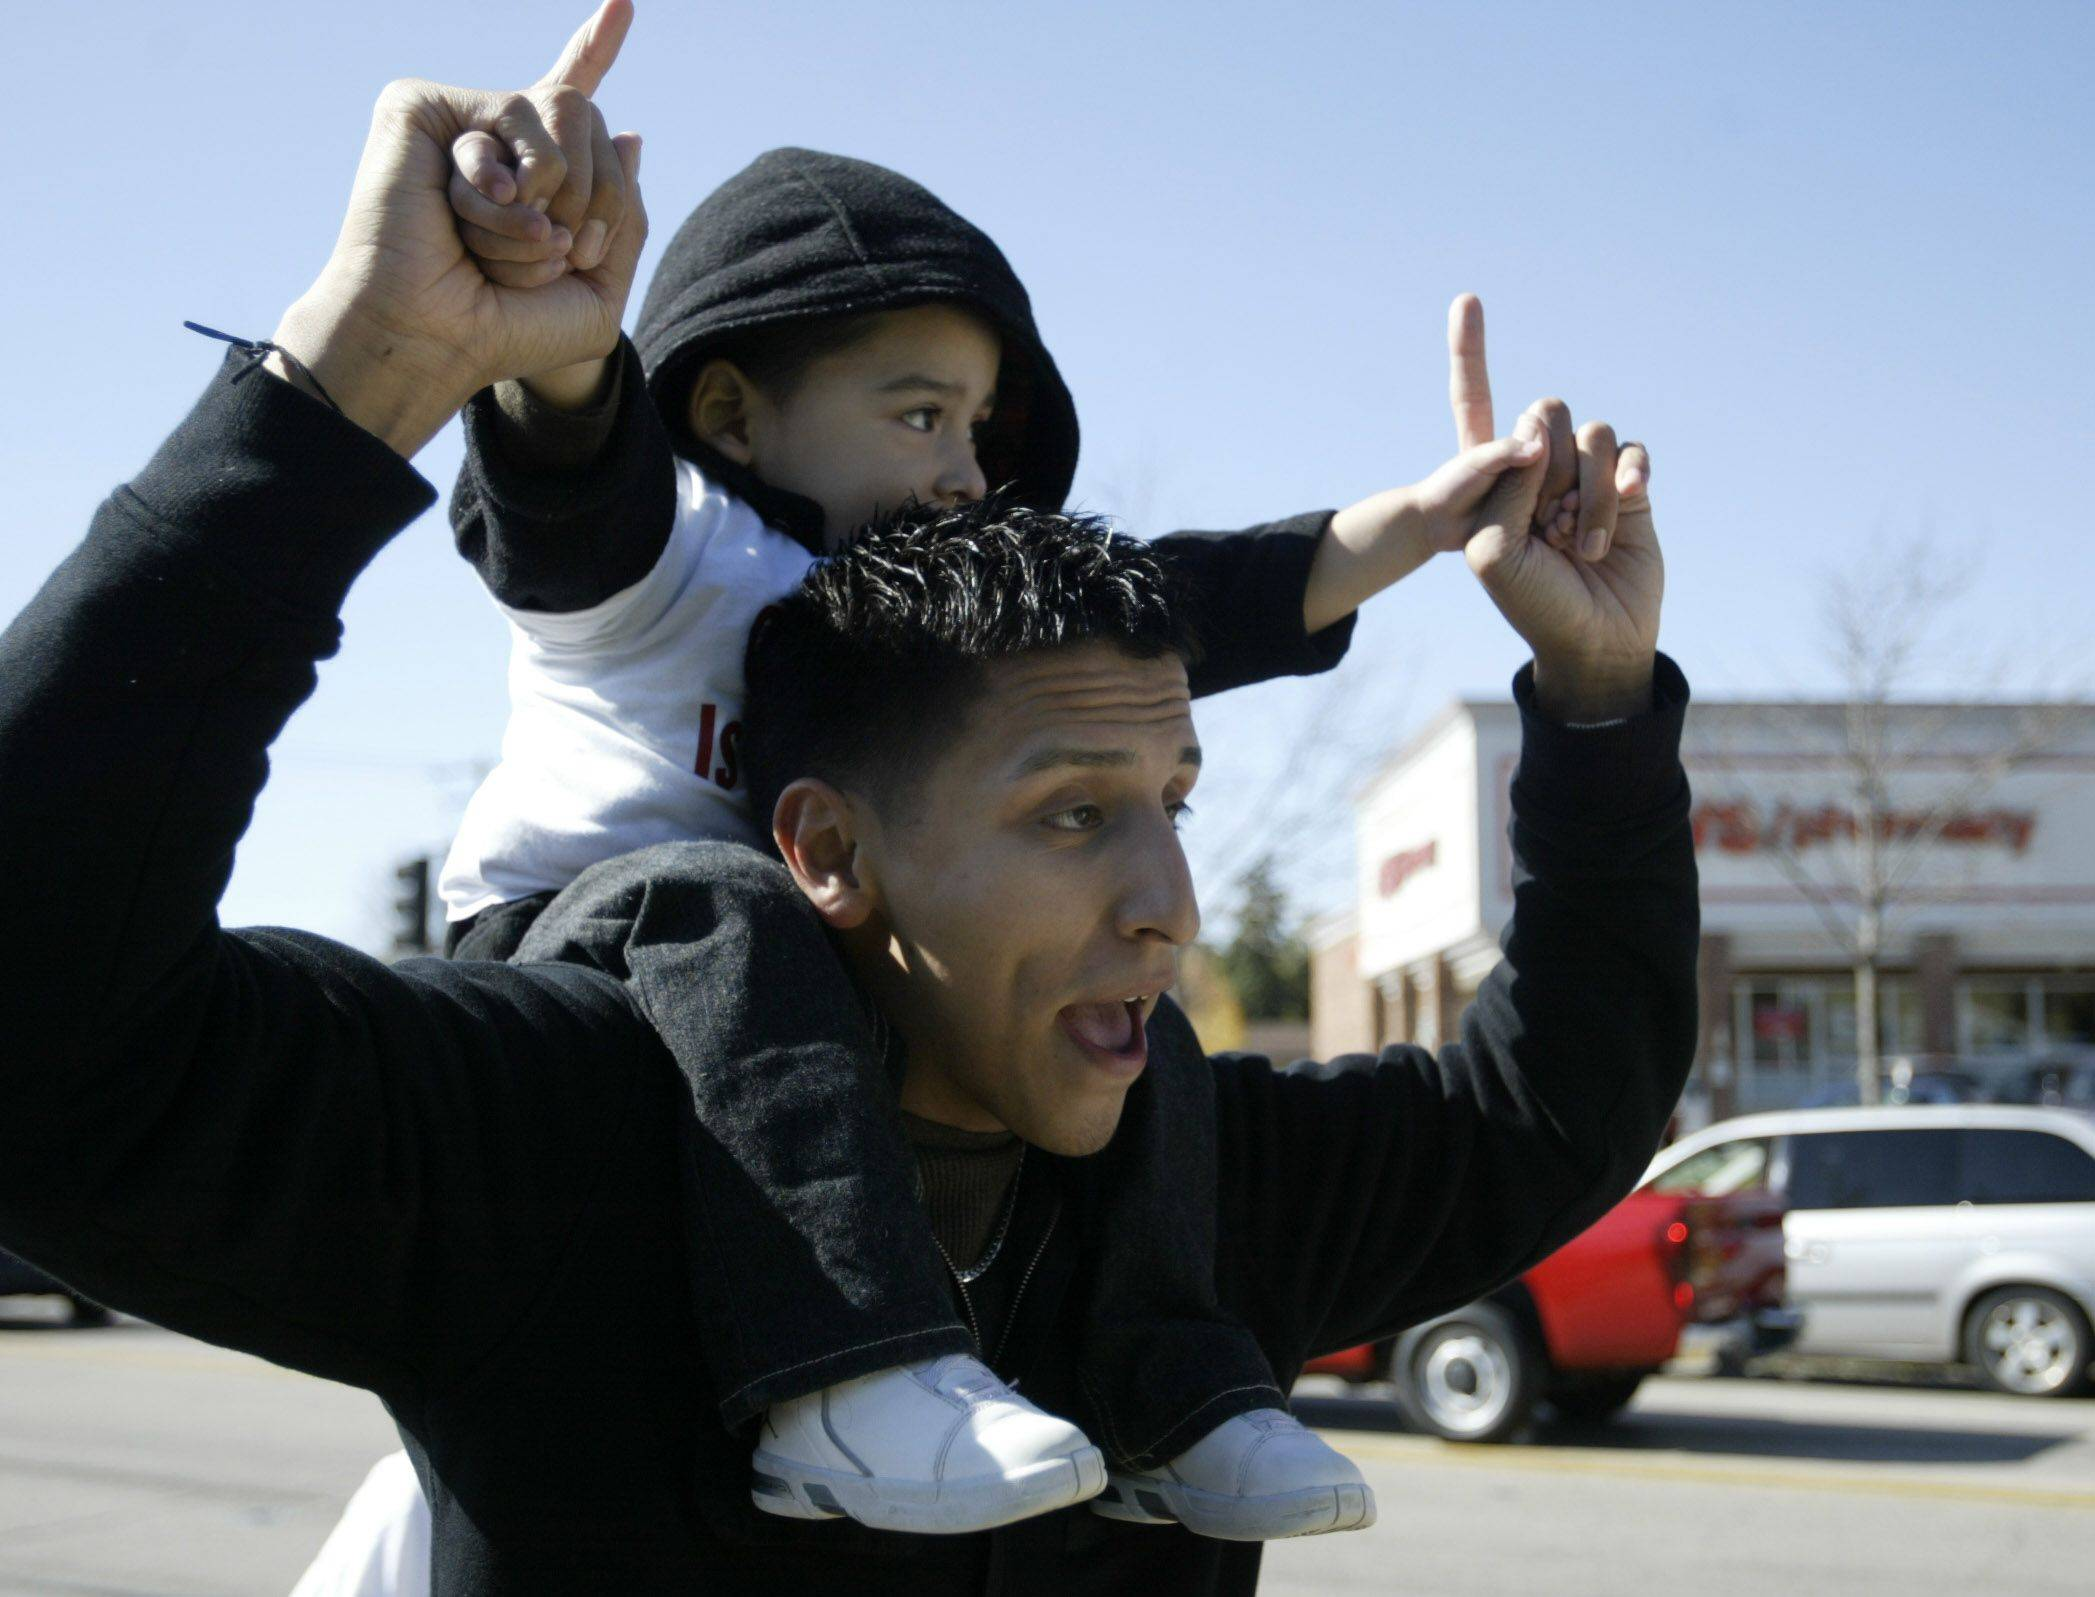 Jose Montoya of Elgin holds Xavier Sanchez, 3, of Elgin, on his shoulders during a Saturday march to protest gang violence in honor of Eric Galarza Jr. who was recently killed. More than 100 people marched with signs and shirts protesting the violence.